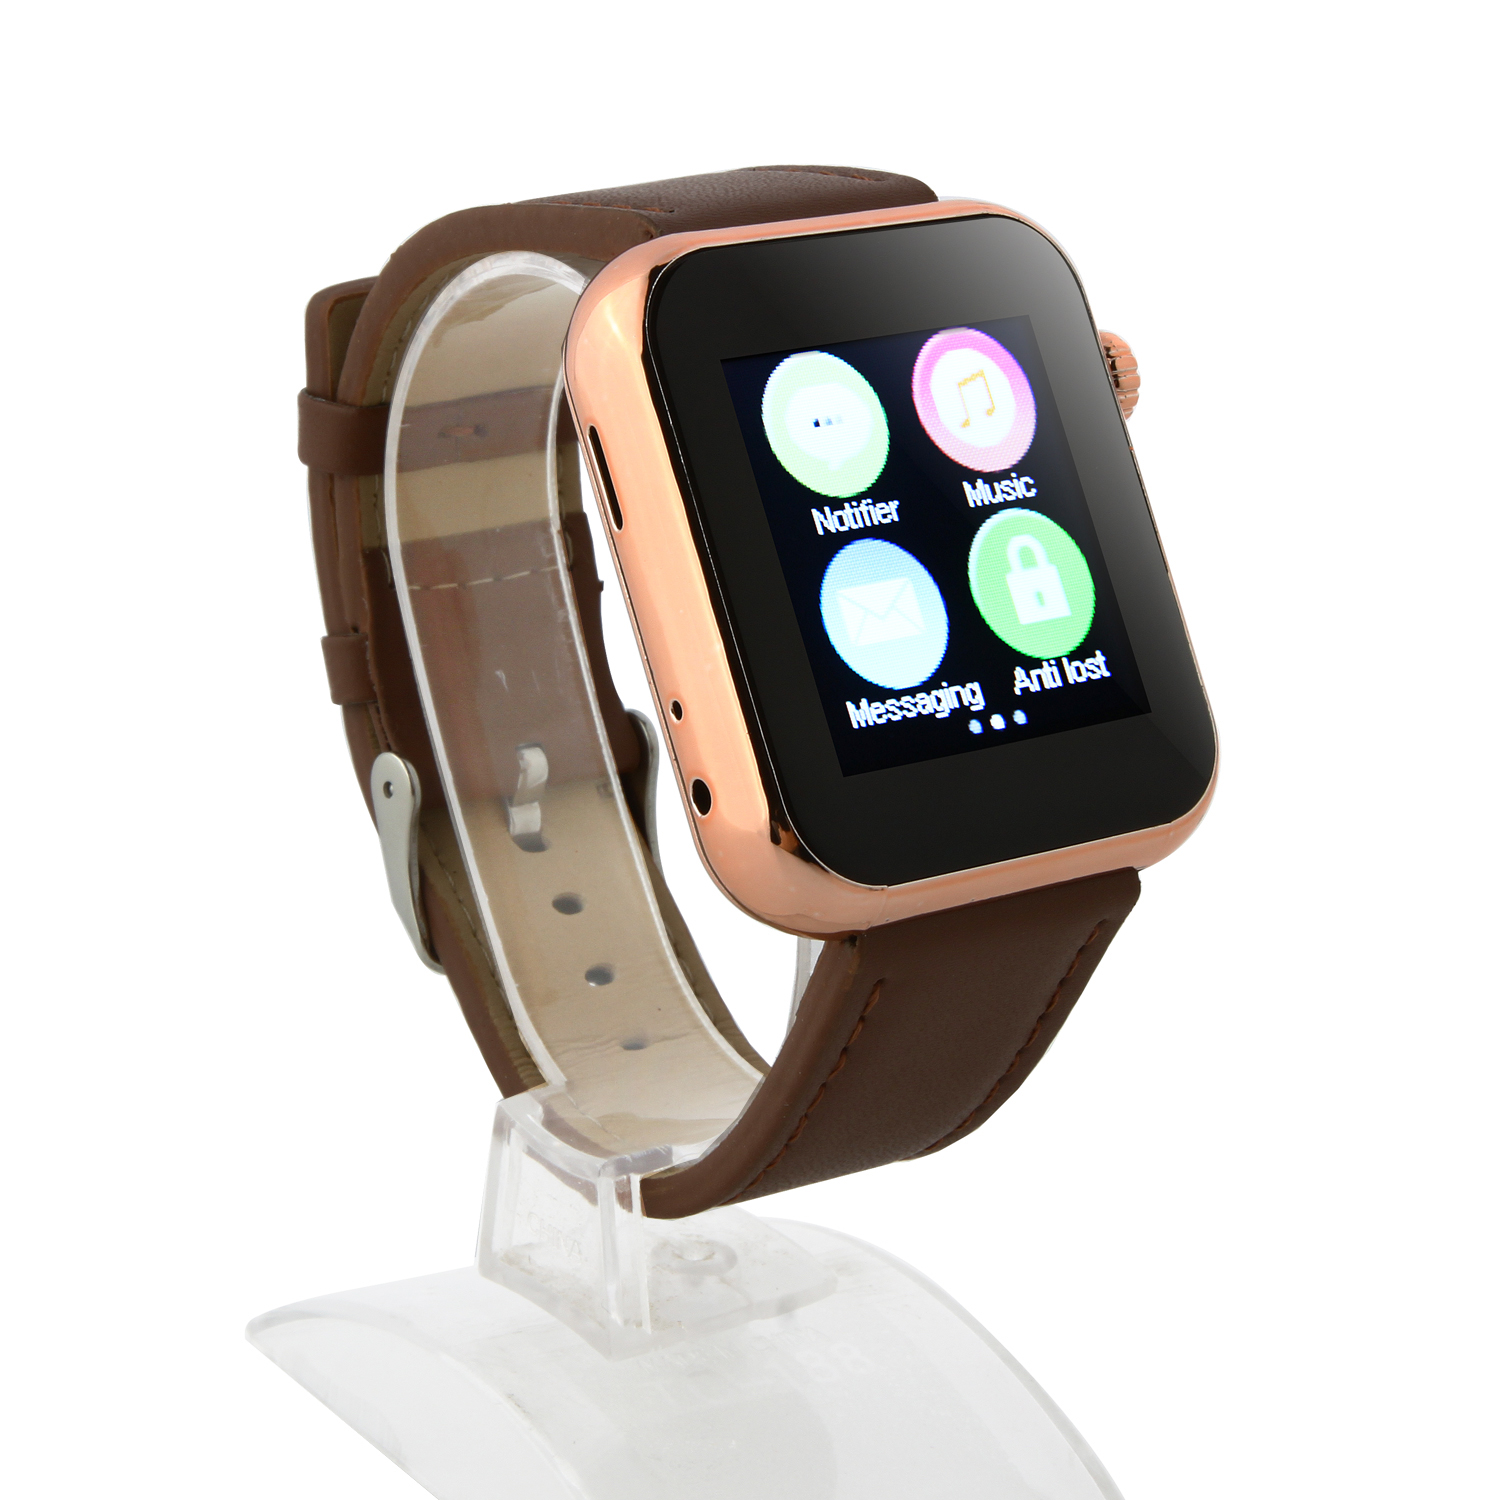 Atongm AW08 Bluetooth Watch Smart Watch with Call MMS Pedometer Anti-lost Brown